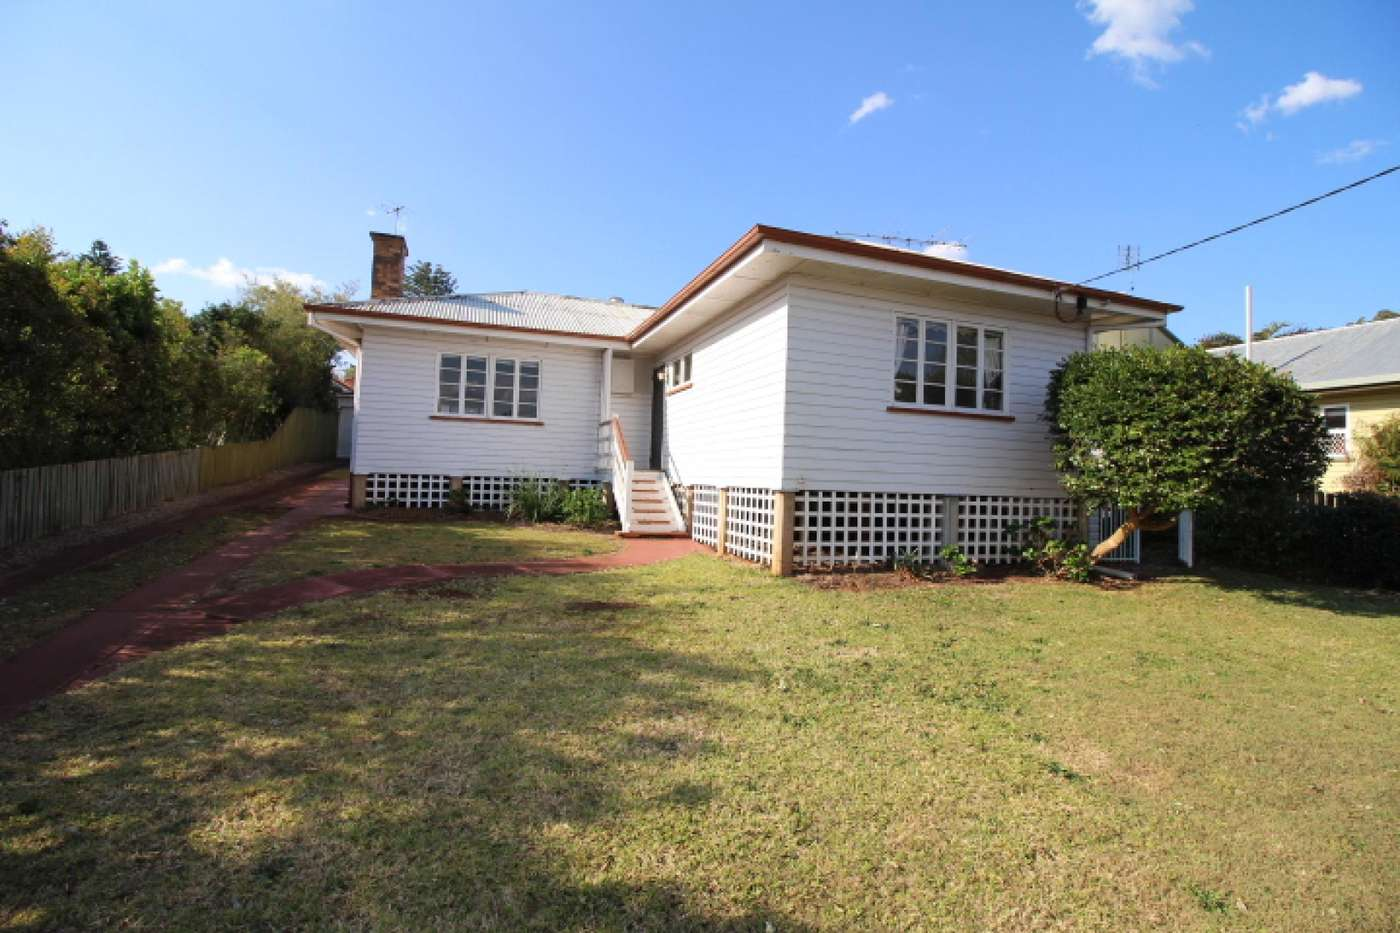 Main view of Homely house listing, 31 Alford Street, Toowoomba, QLD 4350